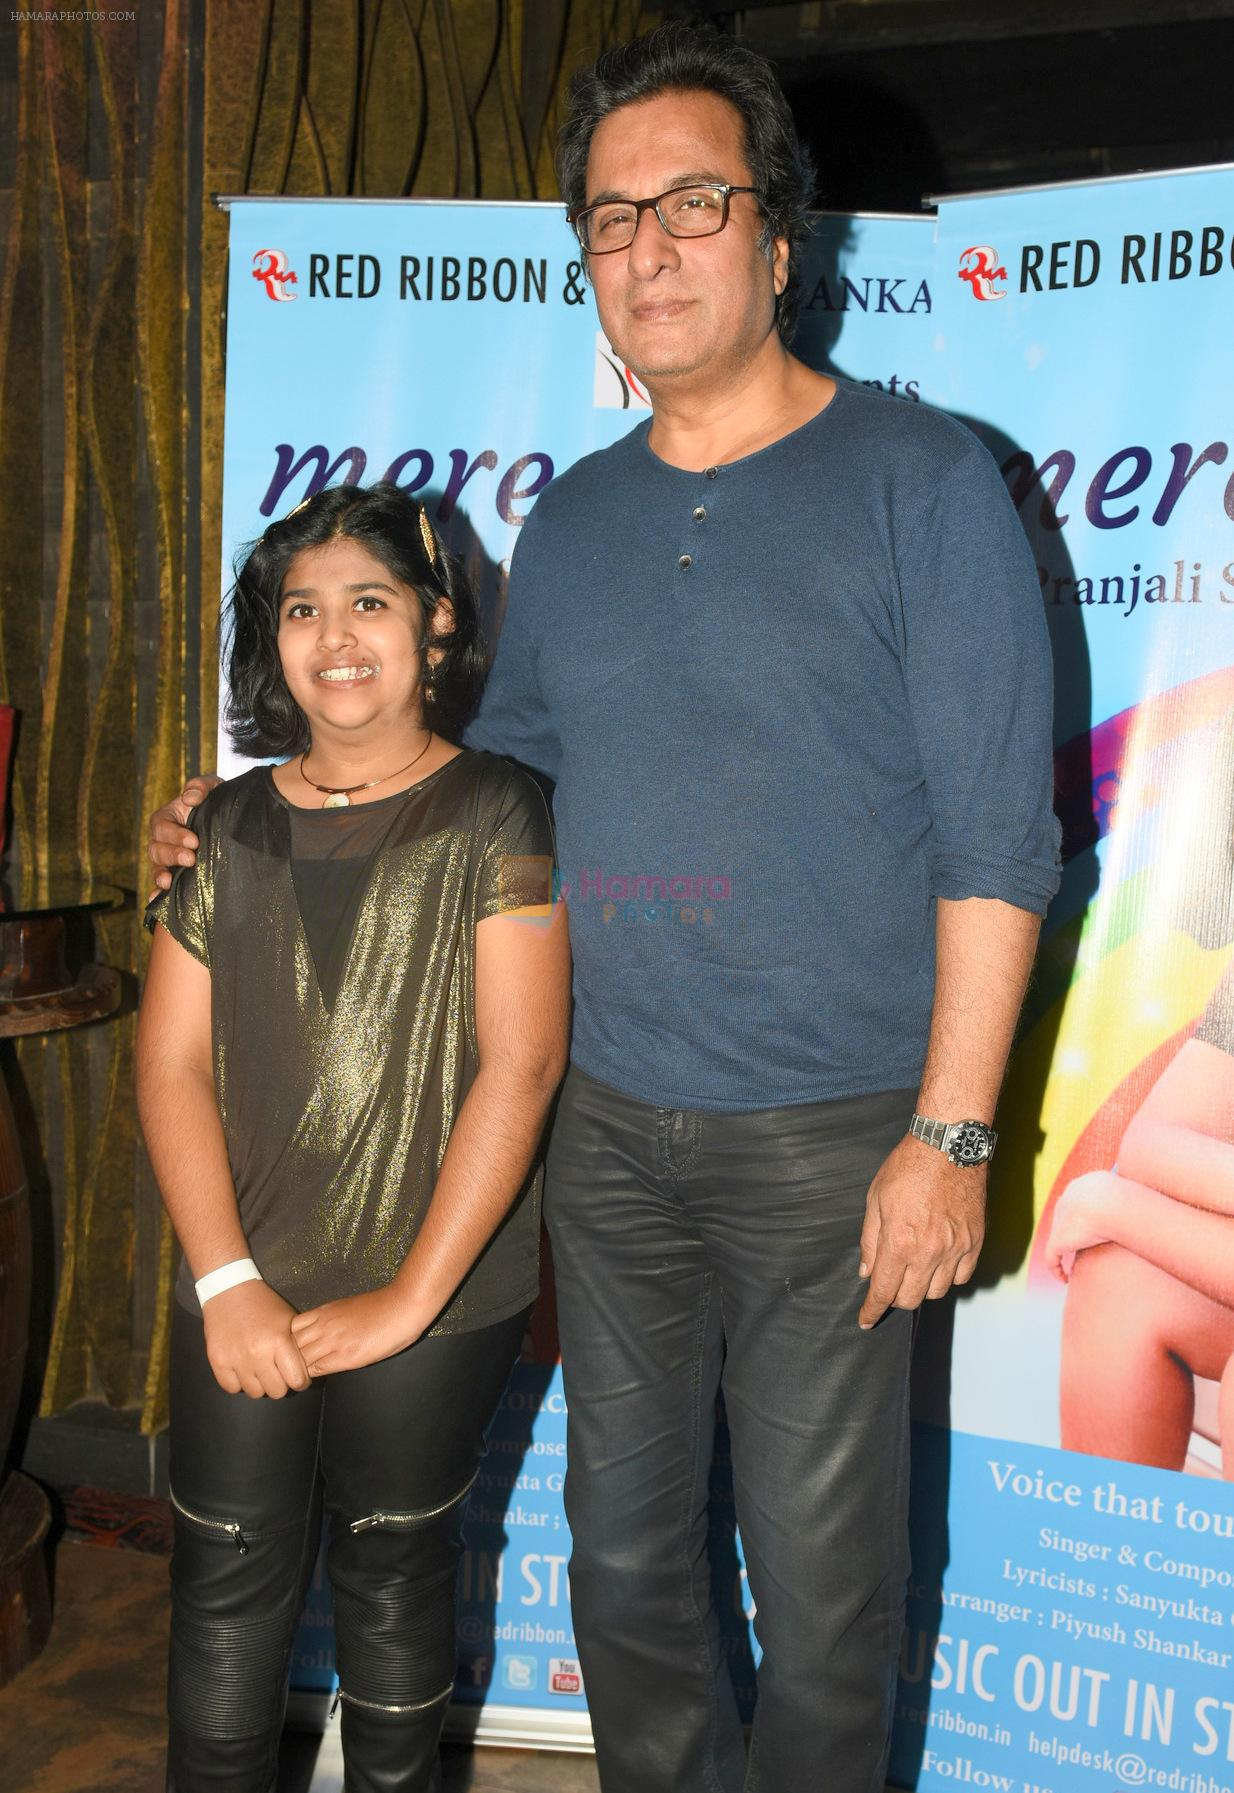 Pranjali Sinha with Talat Aziz at the Launch of Youngest Music Composer in Golden Book of World Records 2016 Pranjali Sinha's new album MERE SAPNE